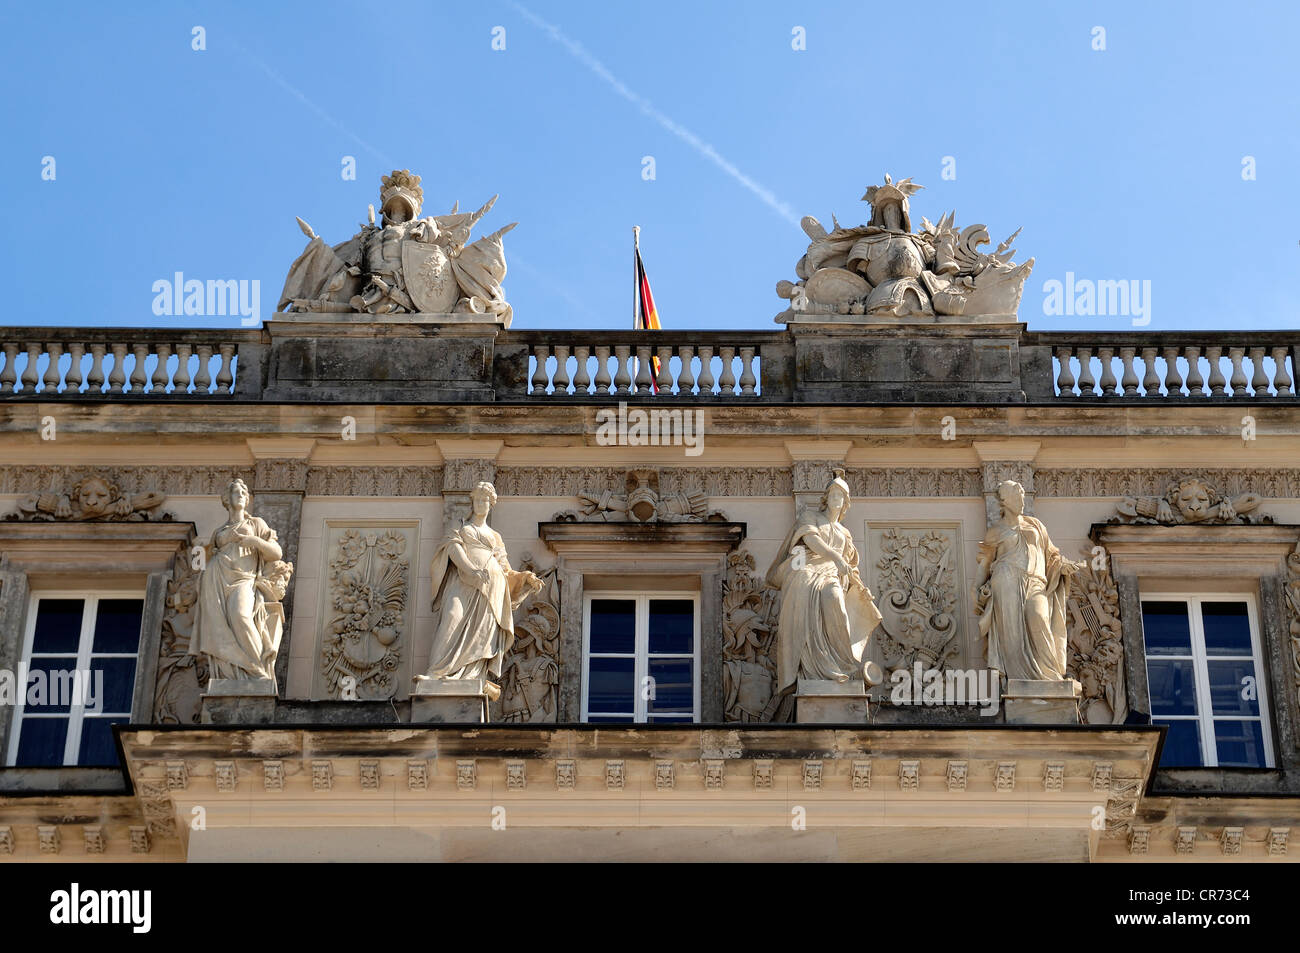 Sculptures on the west facade of Herrenchiemsee Palace, Herreninsel island, Bavaria, Germany, Europe - Stock Image